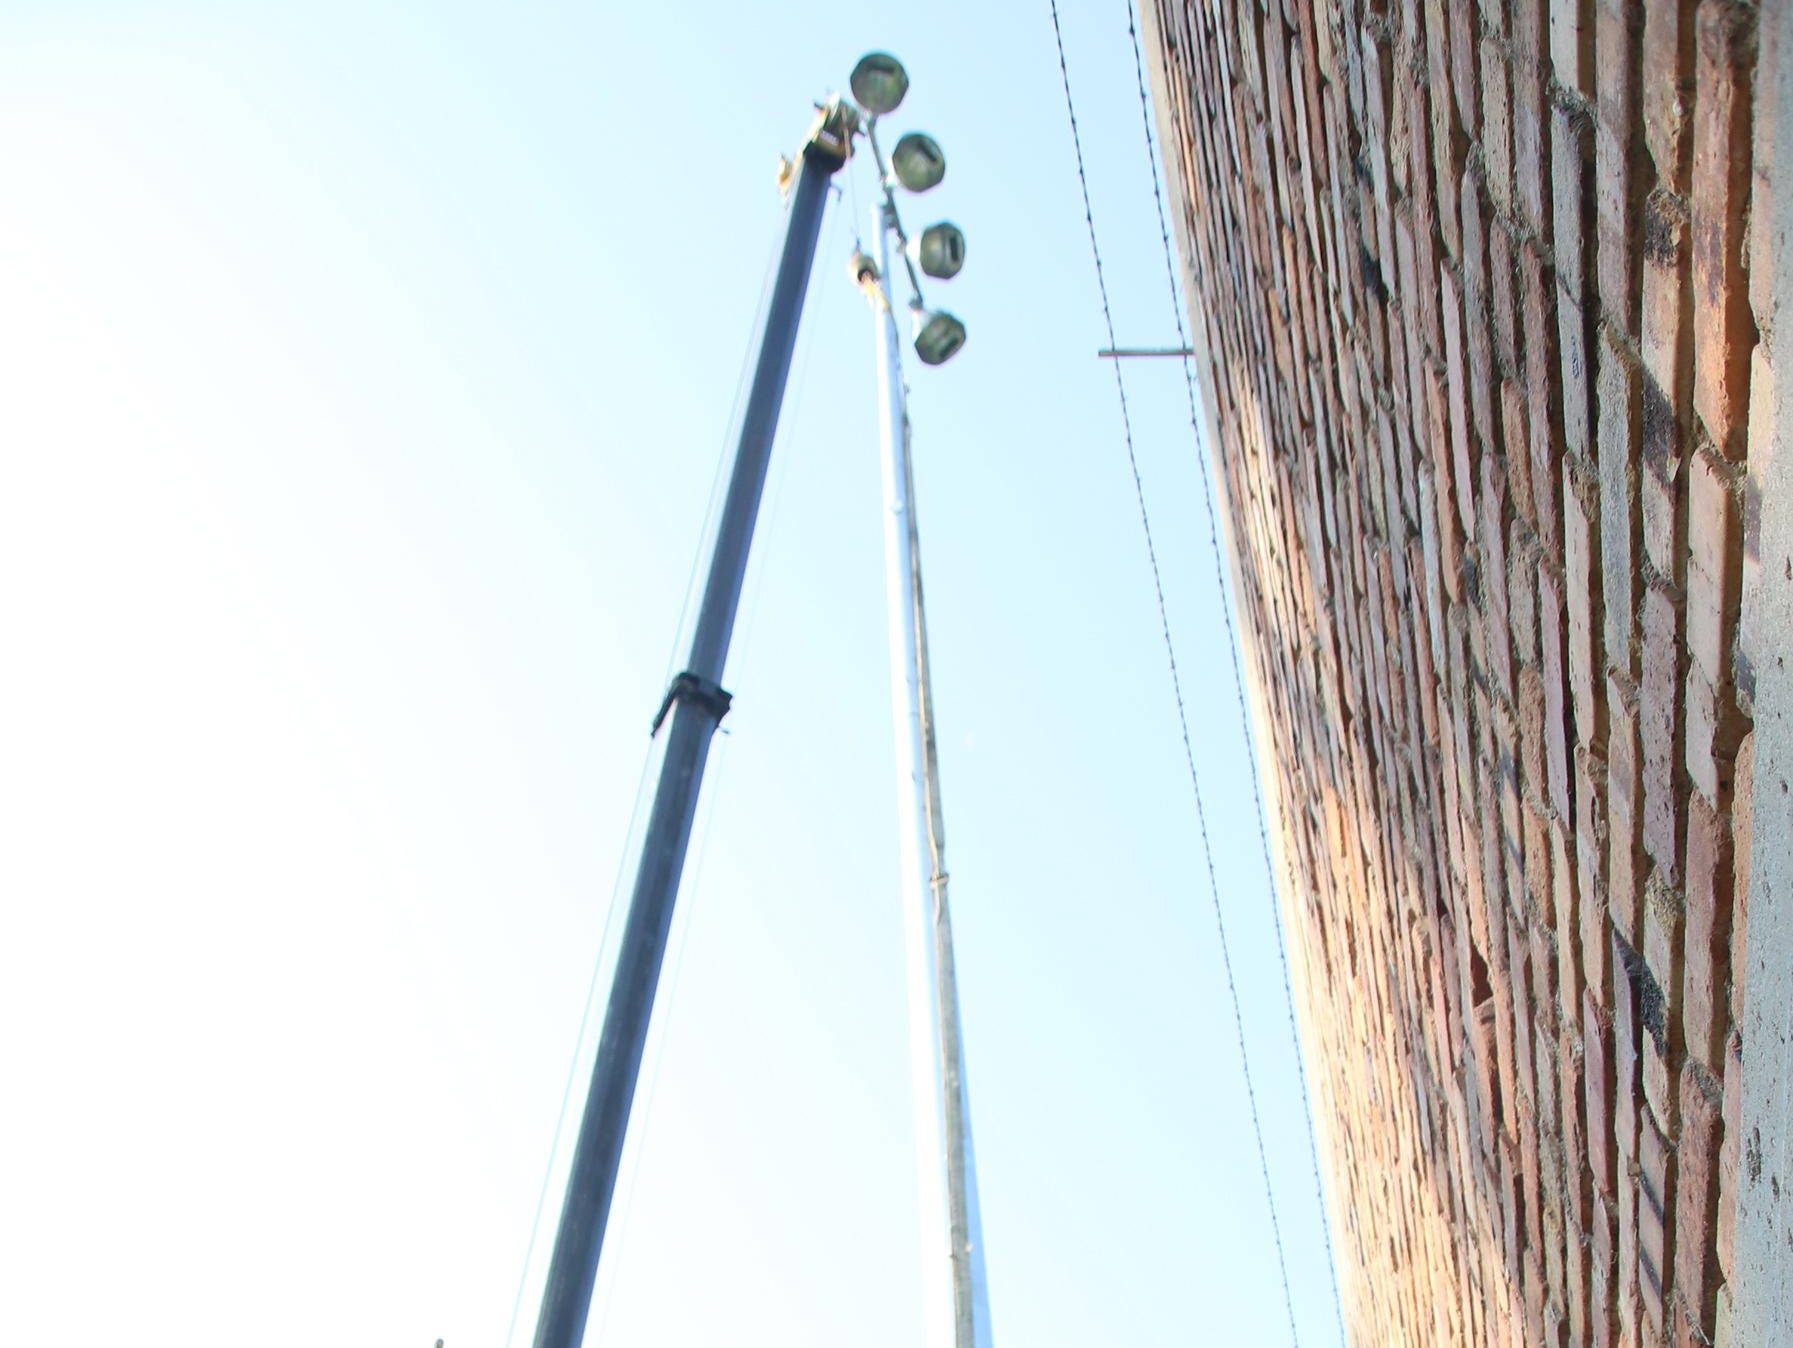 The first set of lights have been installed at Fort Dodge's Ed McNeil Field in time for Monday's game against Humboldt.